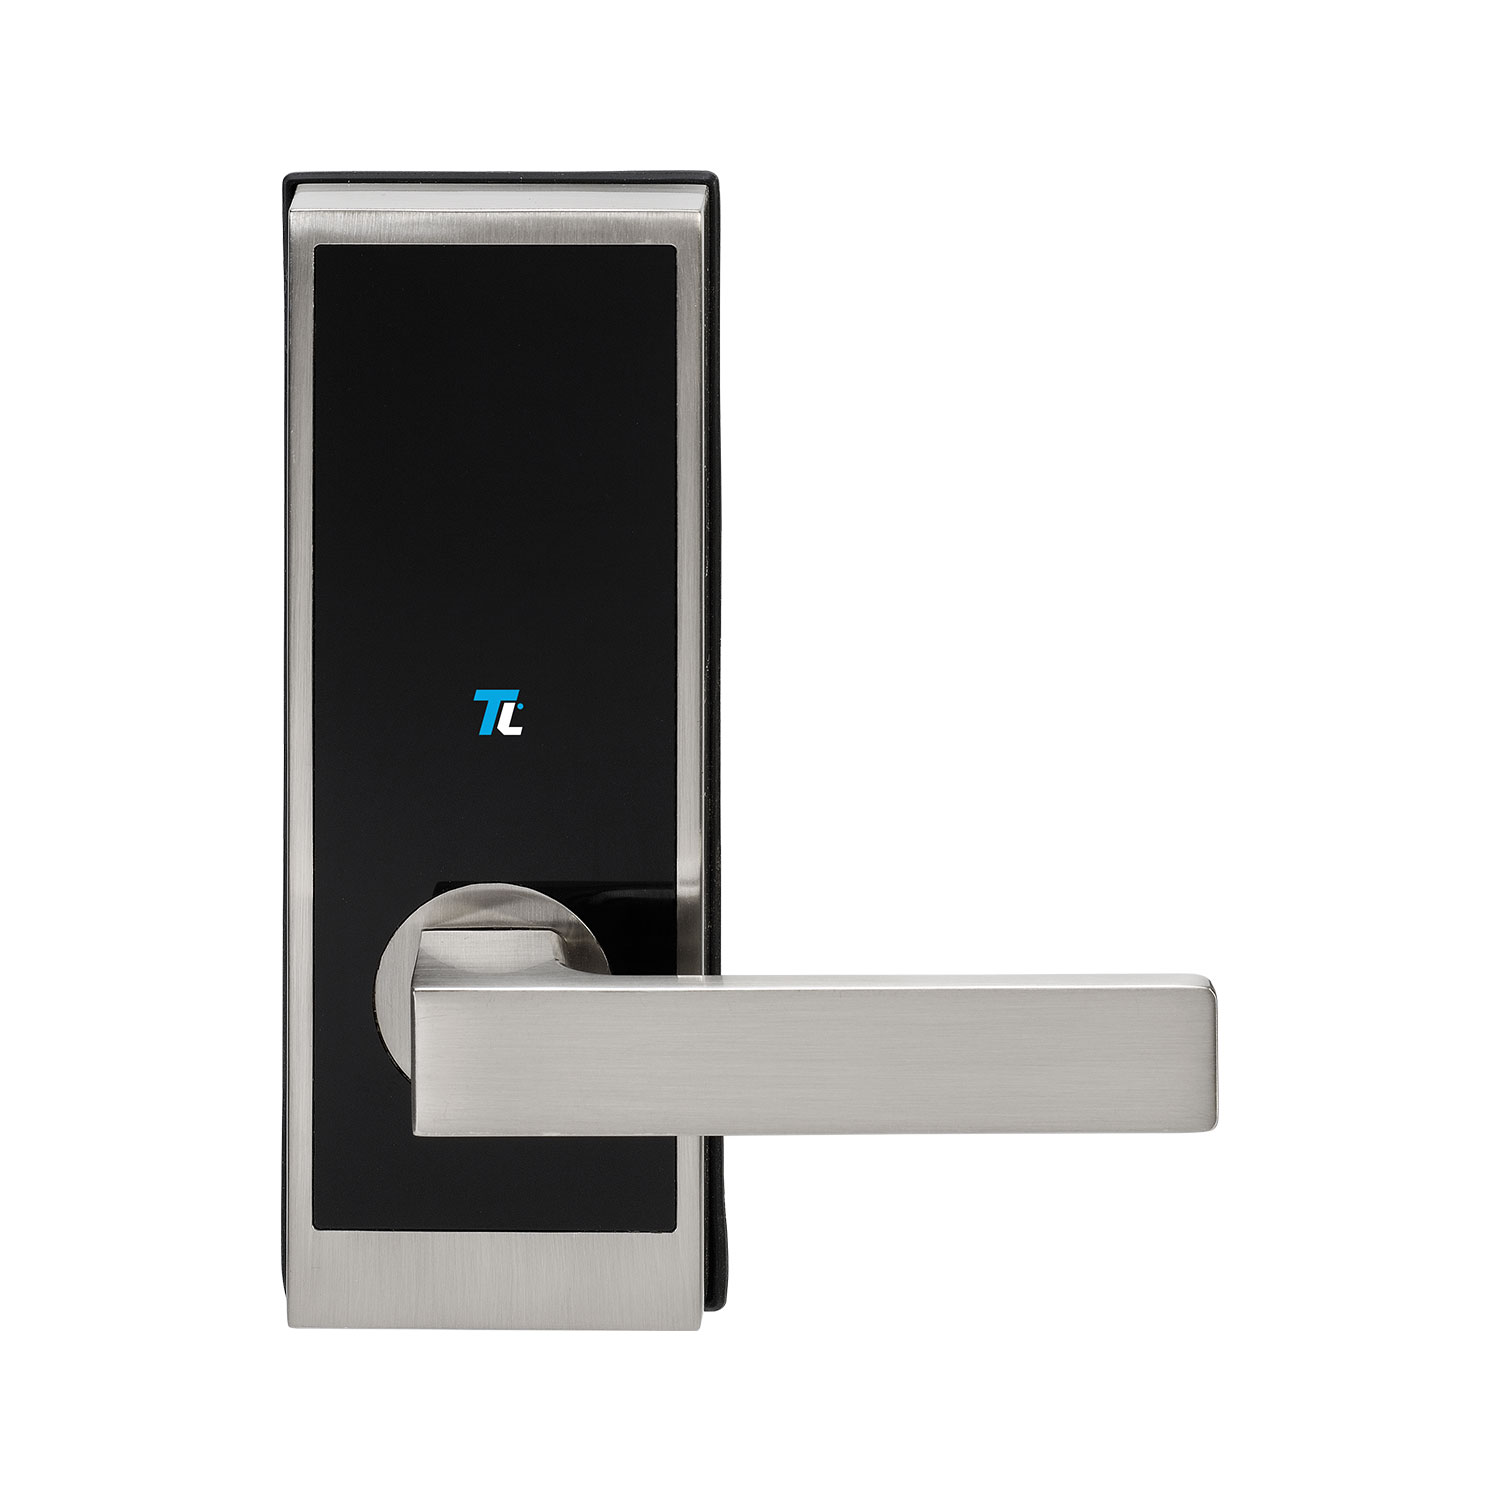 hotels hotel lock suppliers for factory door china steel py electronic system stainless